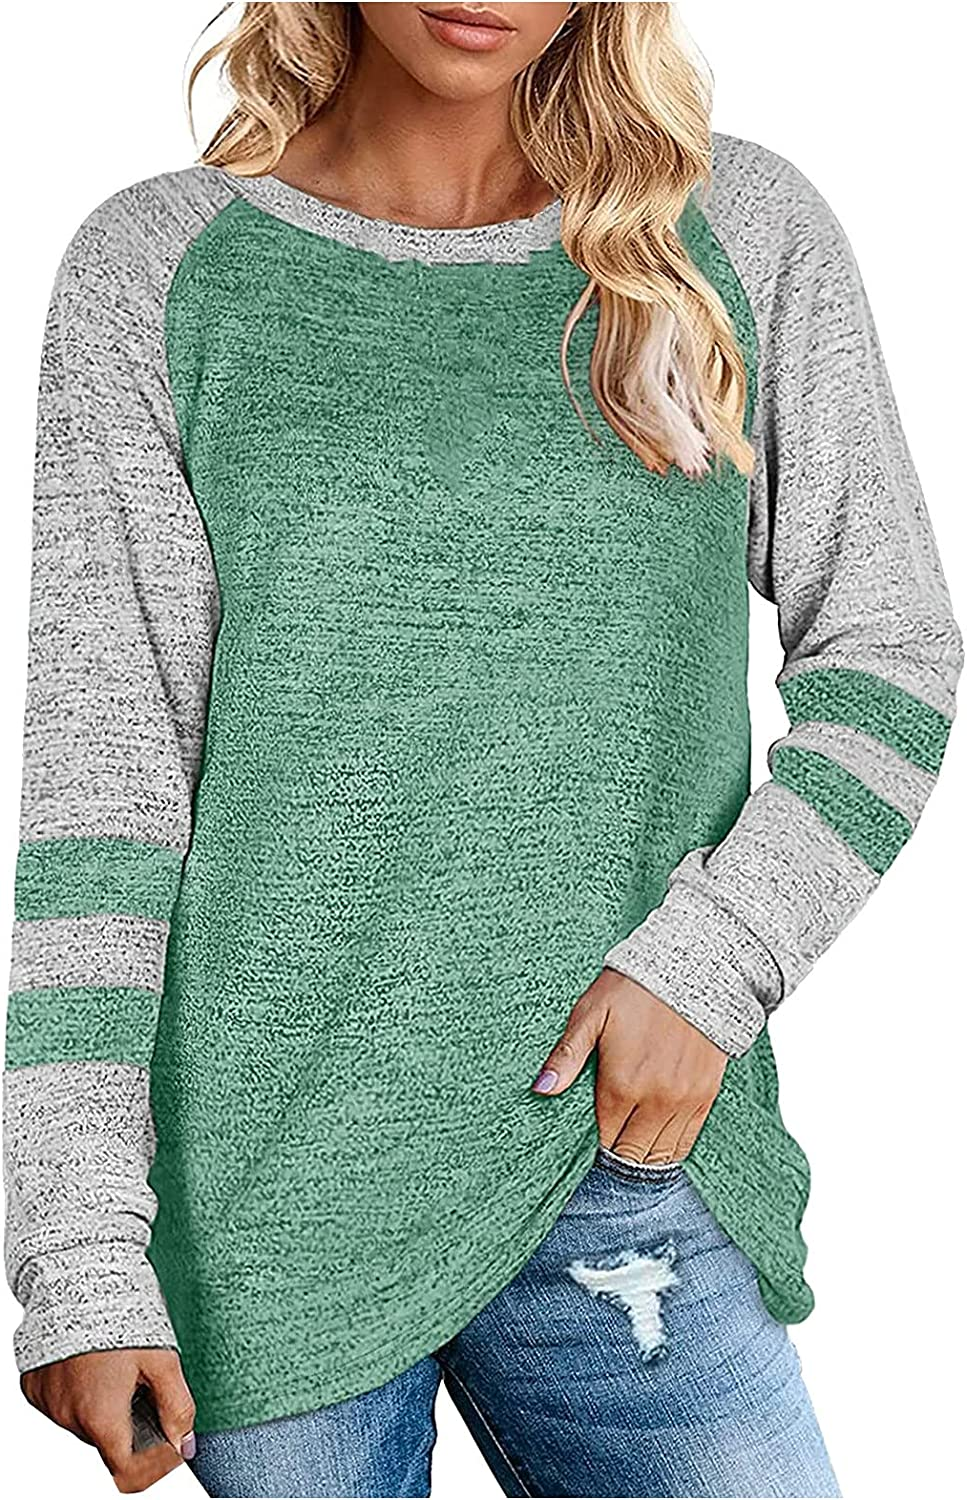 Pullover Blouse Long Beach Mall for Max 54% OFF Women O-Neck Sleeve Pull Long Color Contrast